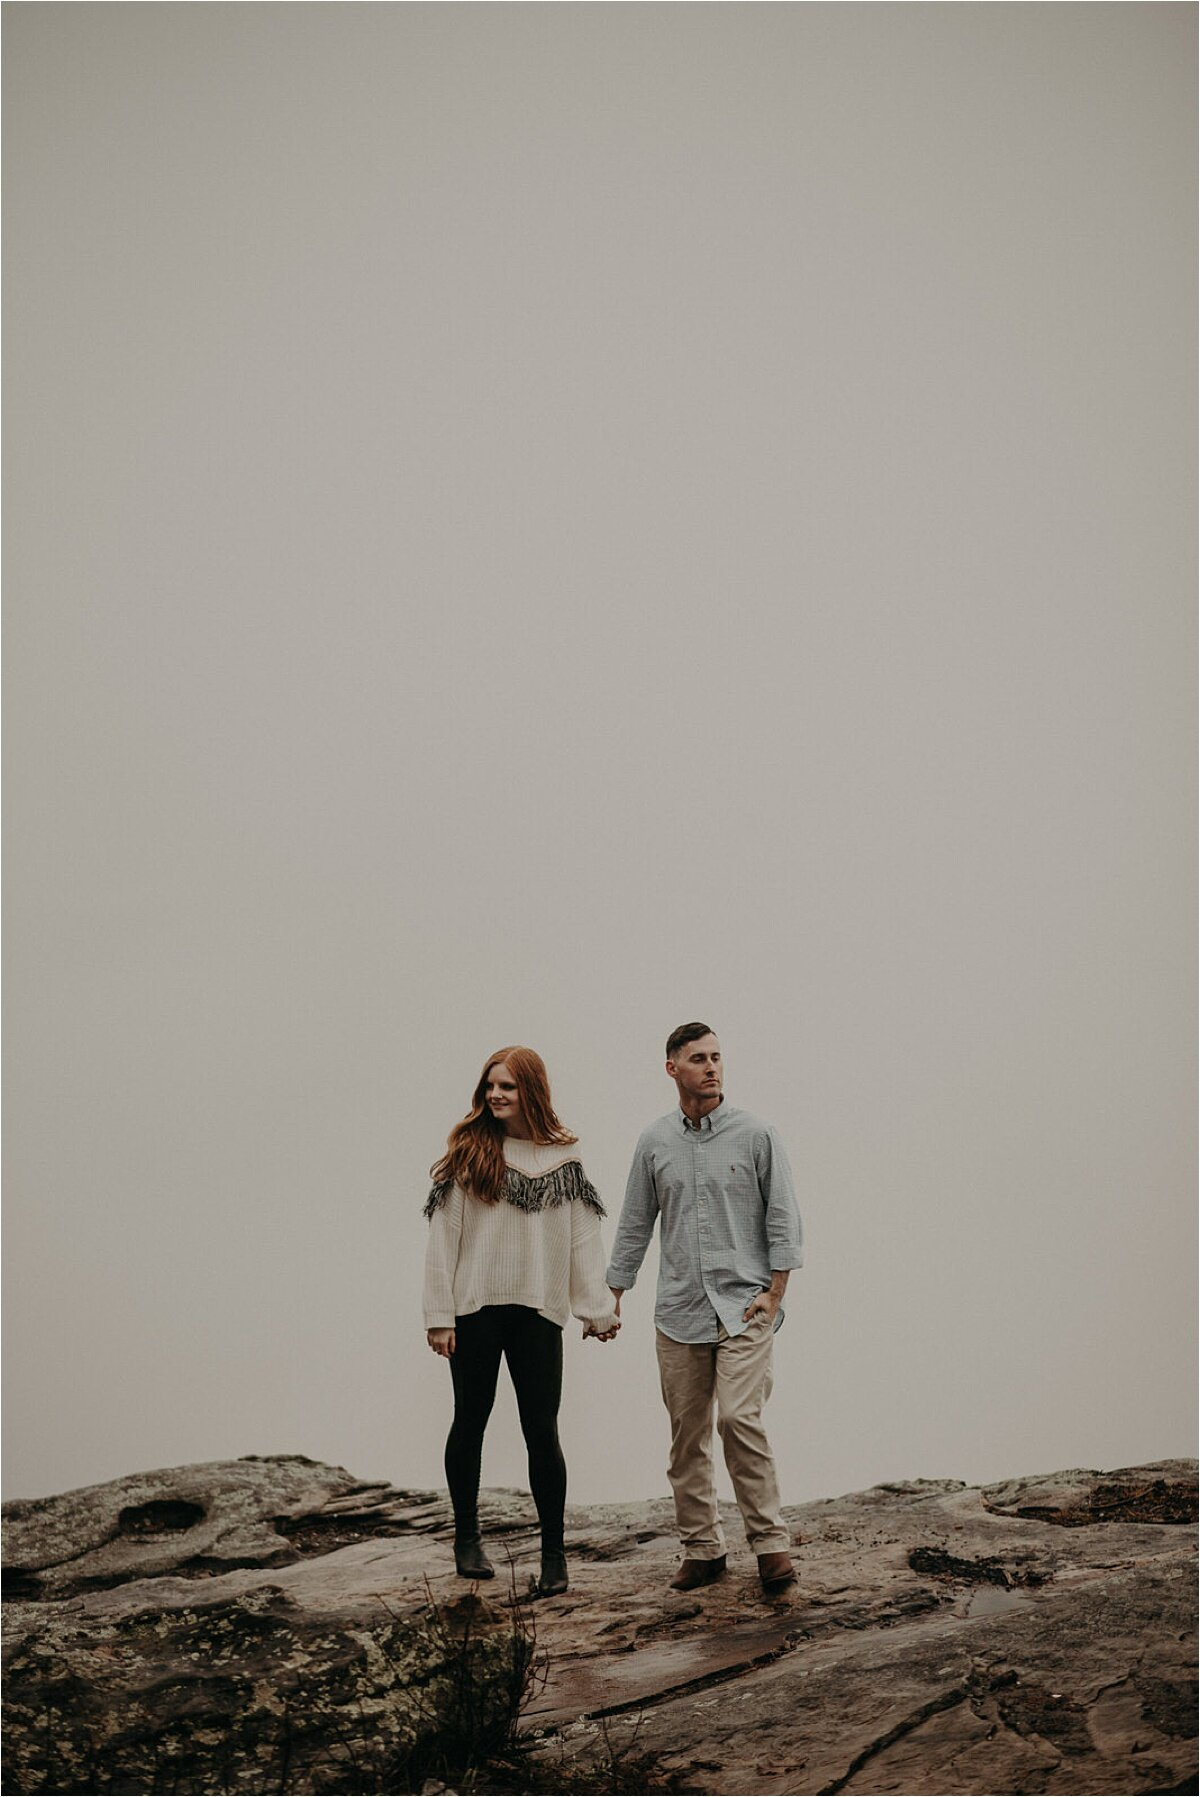 A foggy, white-out cloud engagement session on a mountain in Chattanooga, Tennessee